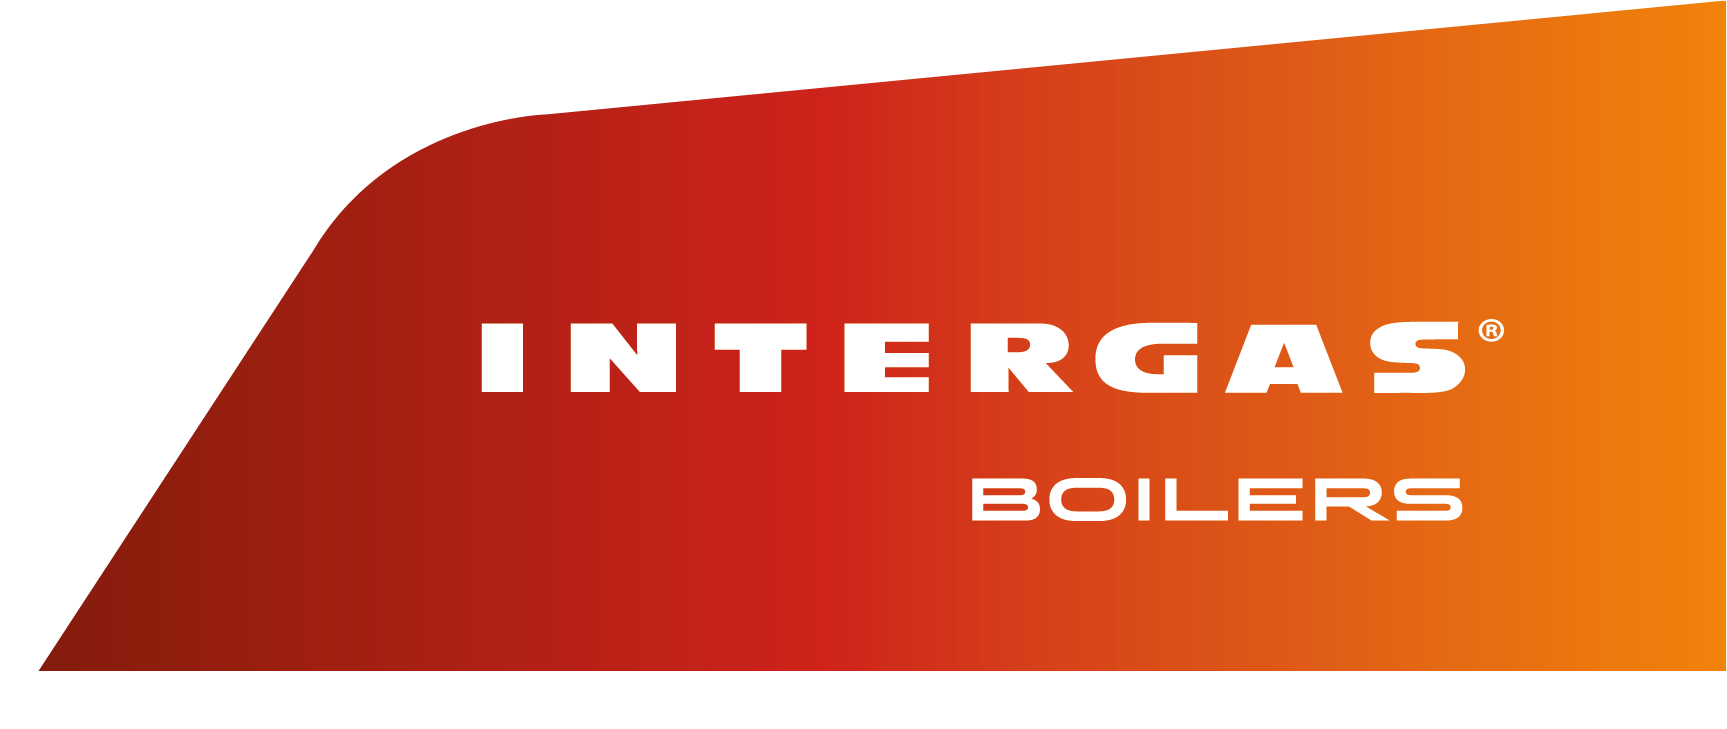 Intergas Boilers